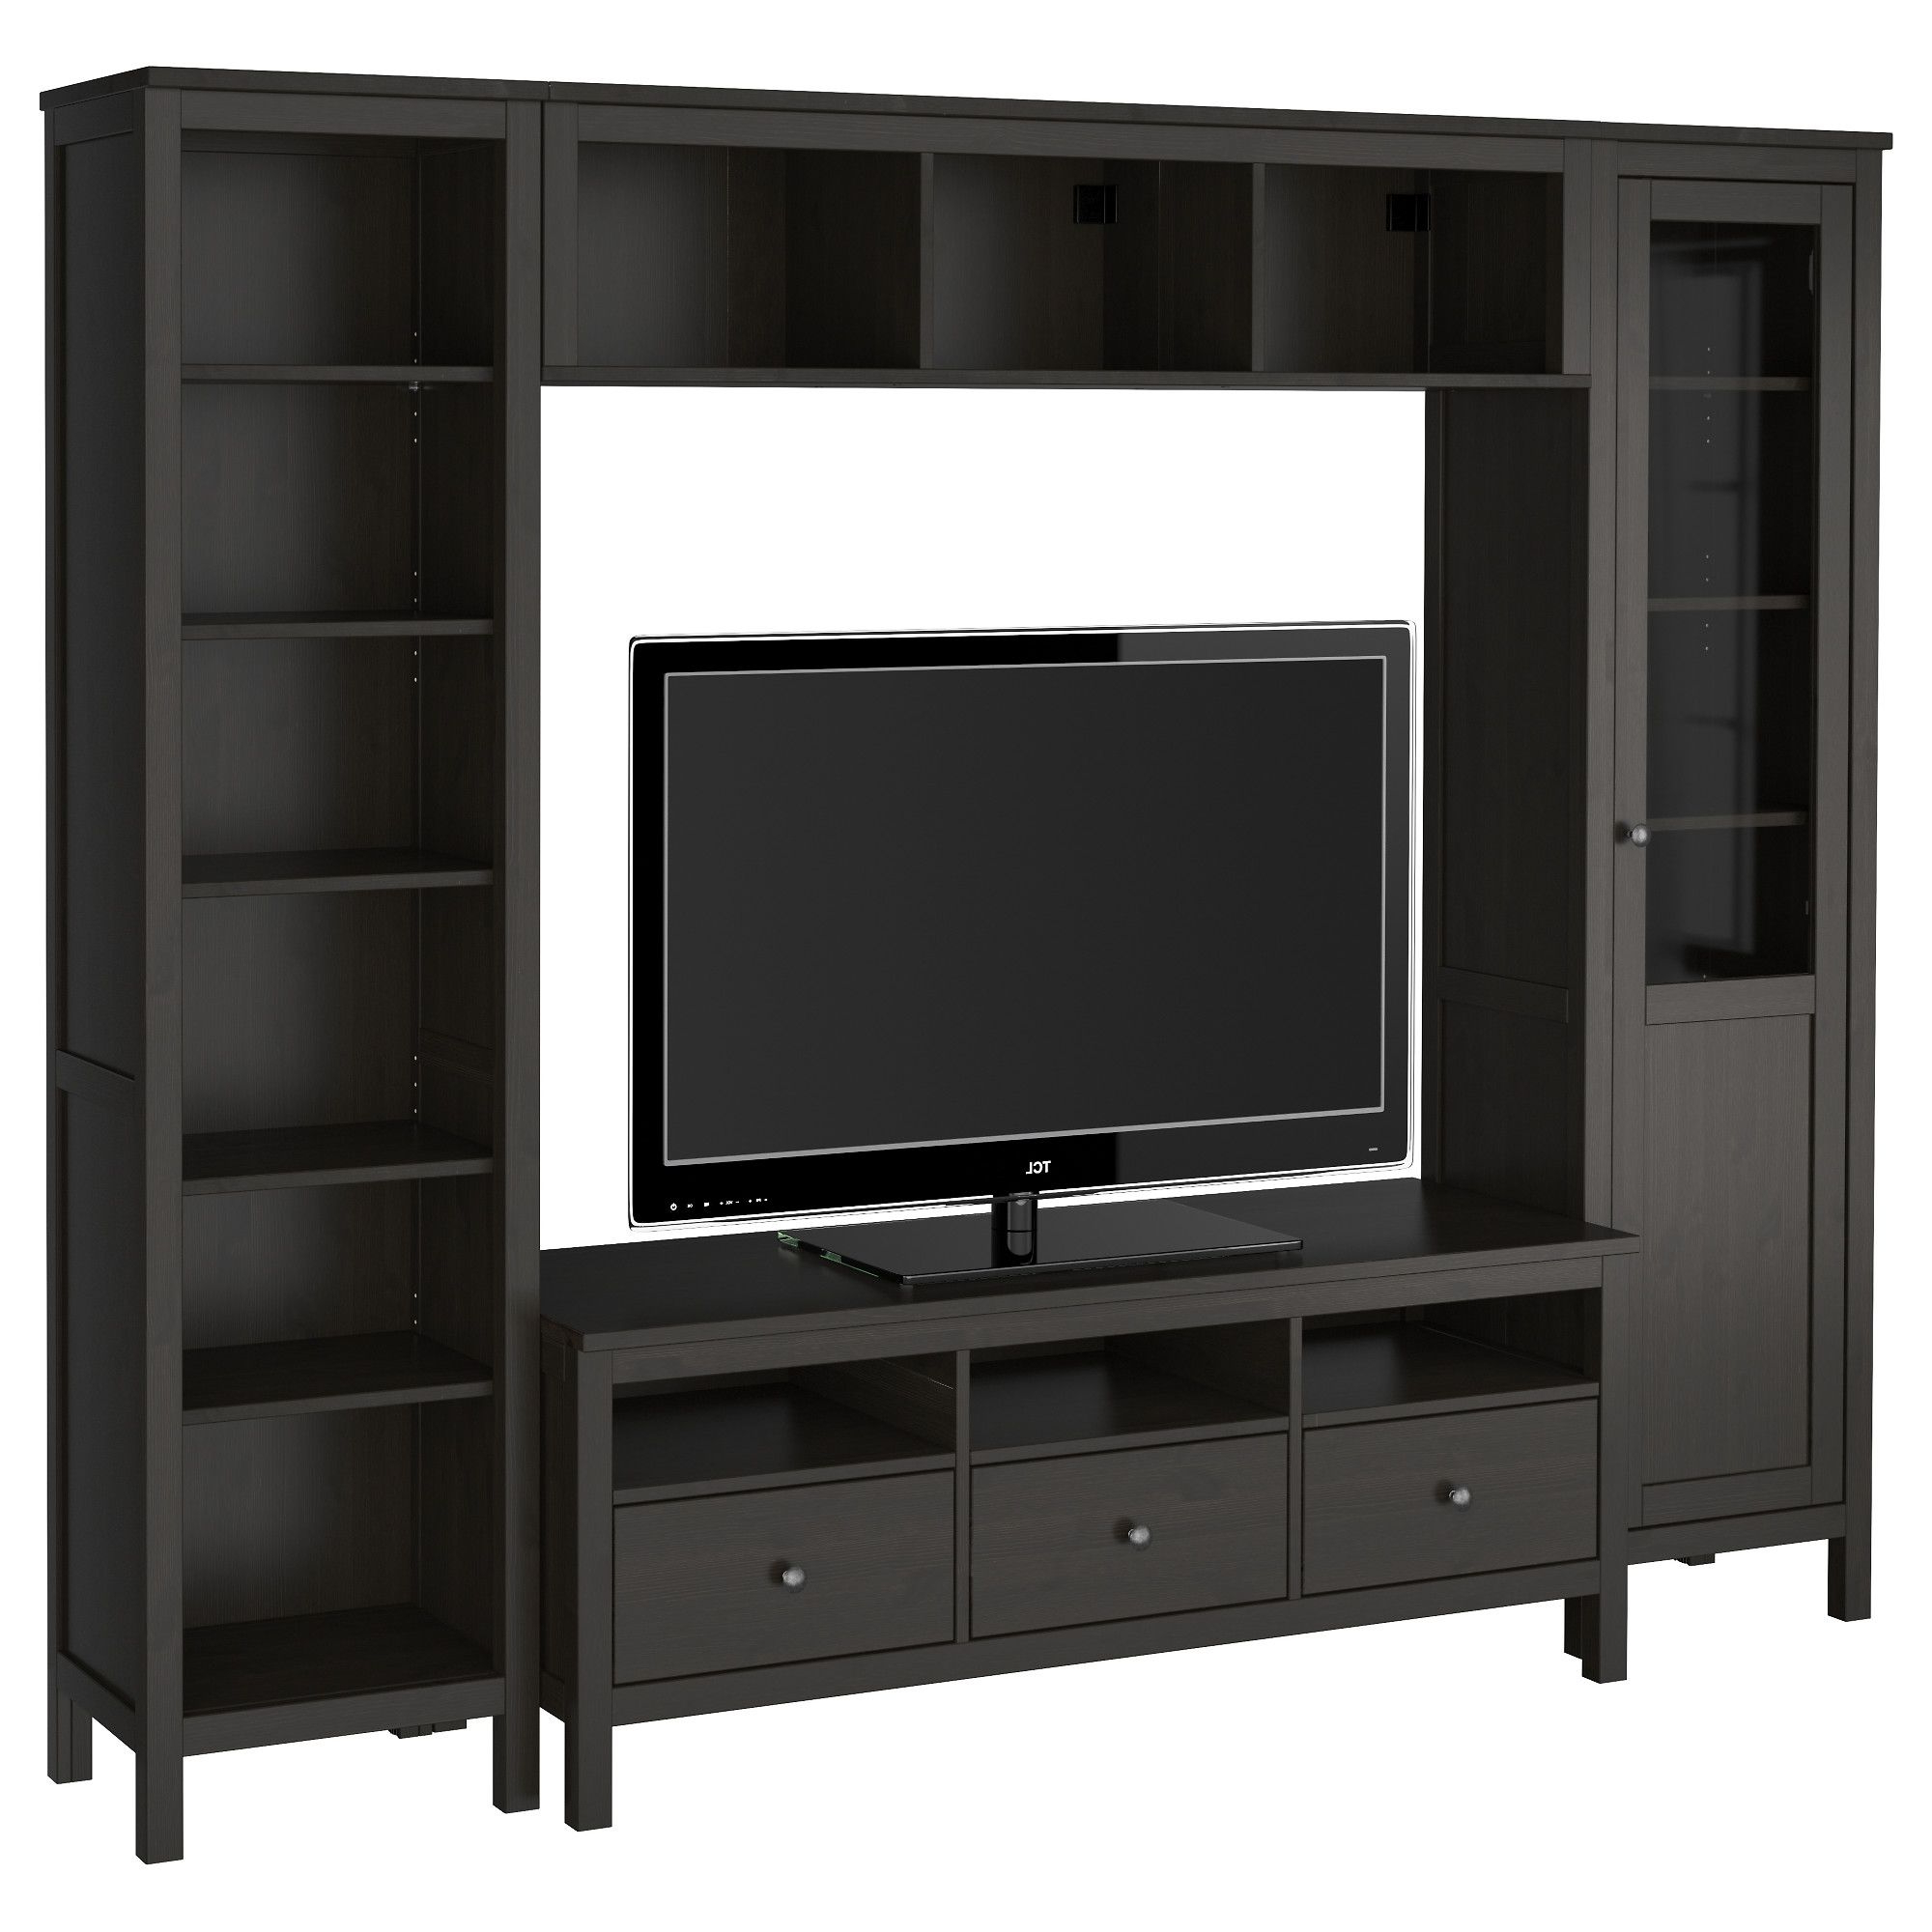 Tall Black Tv Cabinets In Most Popular Black Tv Stand Or Tv Stand With Hutch Also Tall Tv Stand Plus Drawer (View 3 of 20)